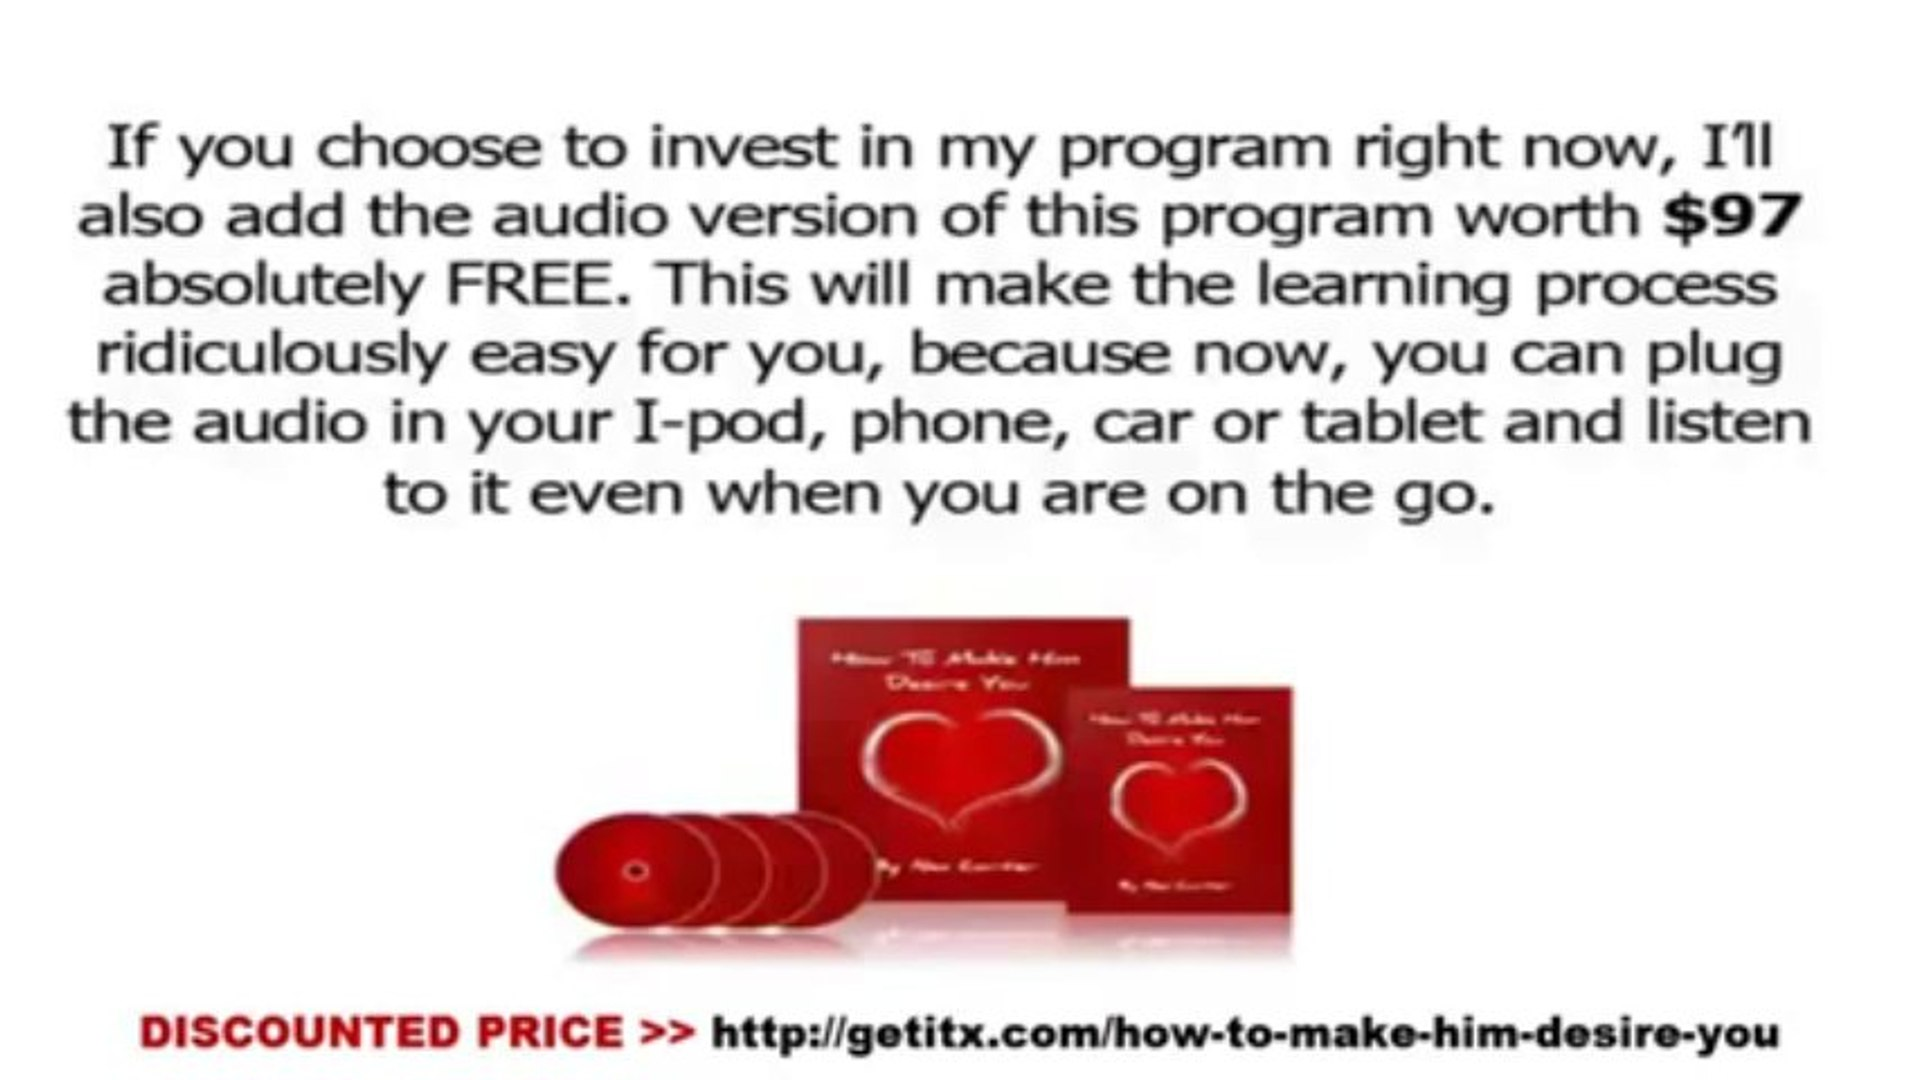 How To Make Him Desire You Review - How To Make Him Desire You System Download